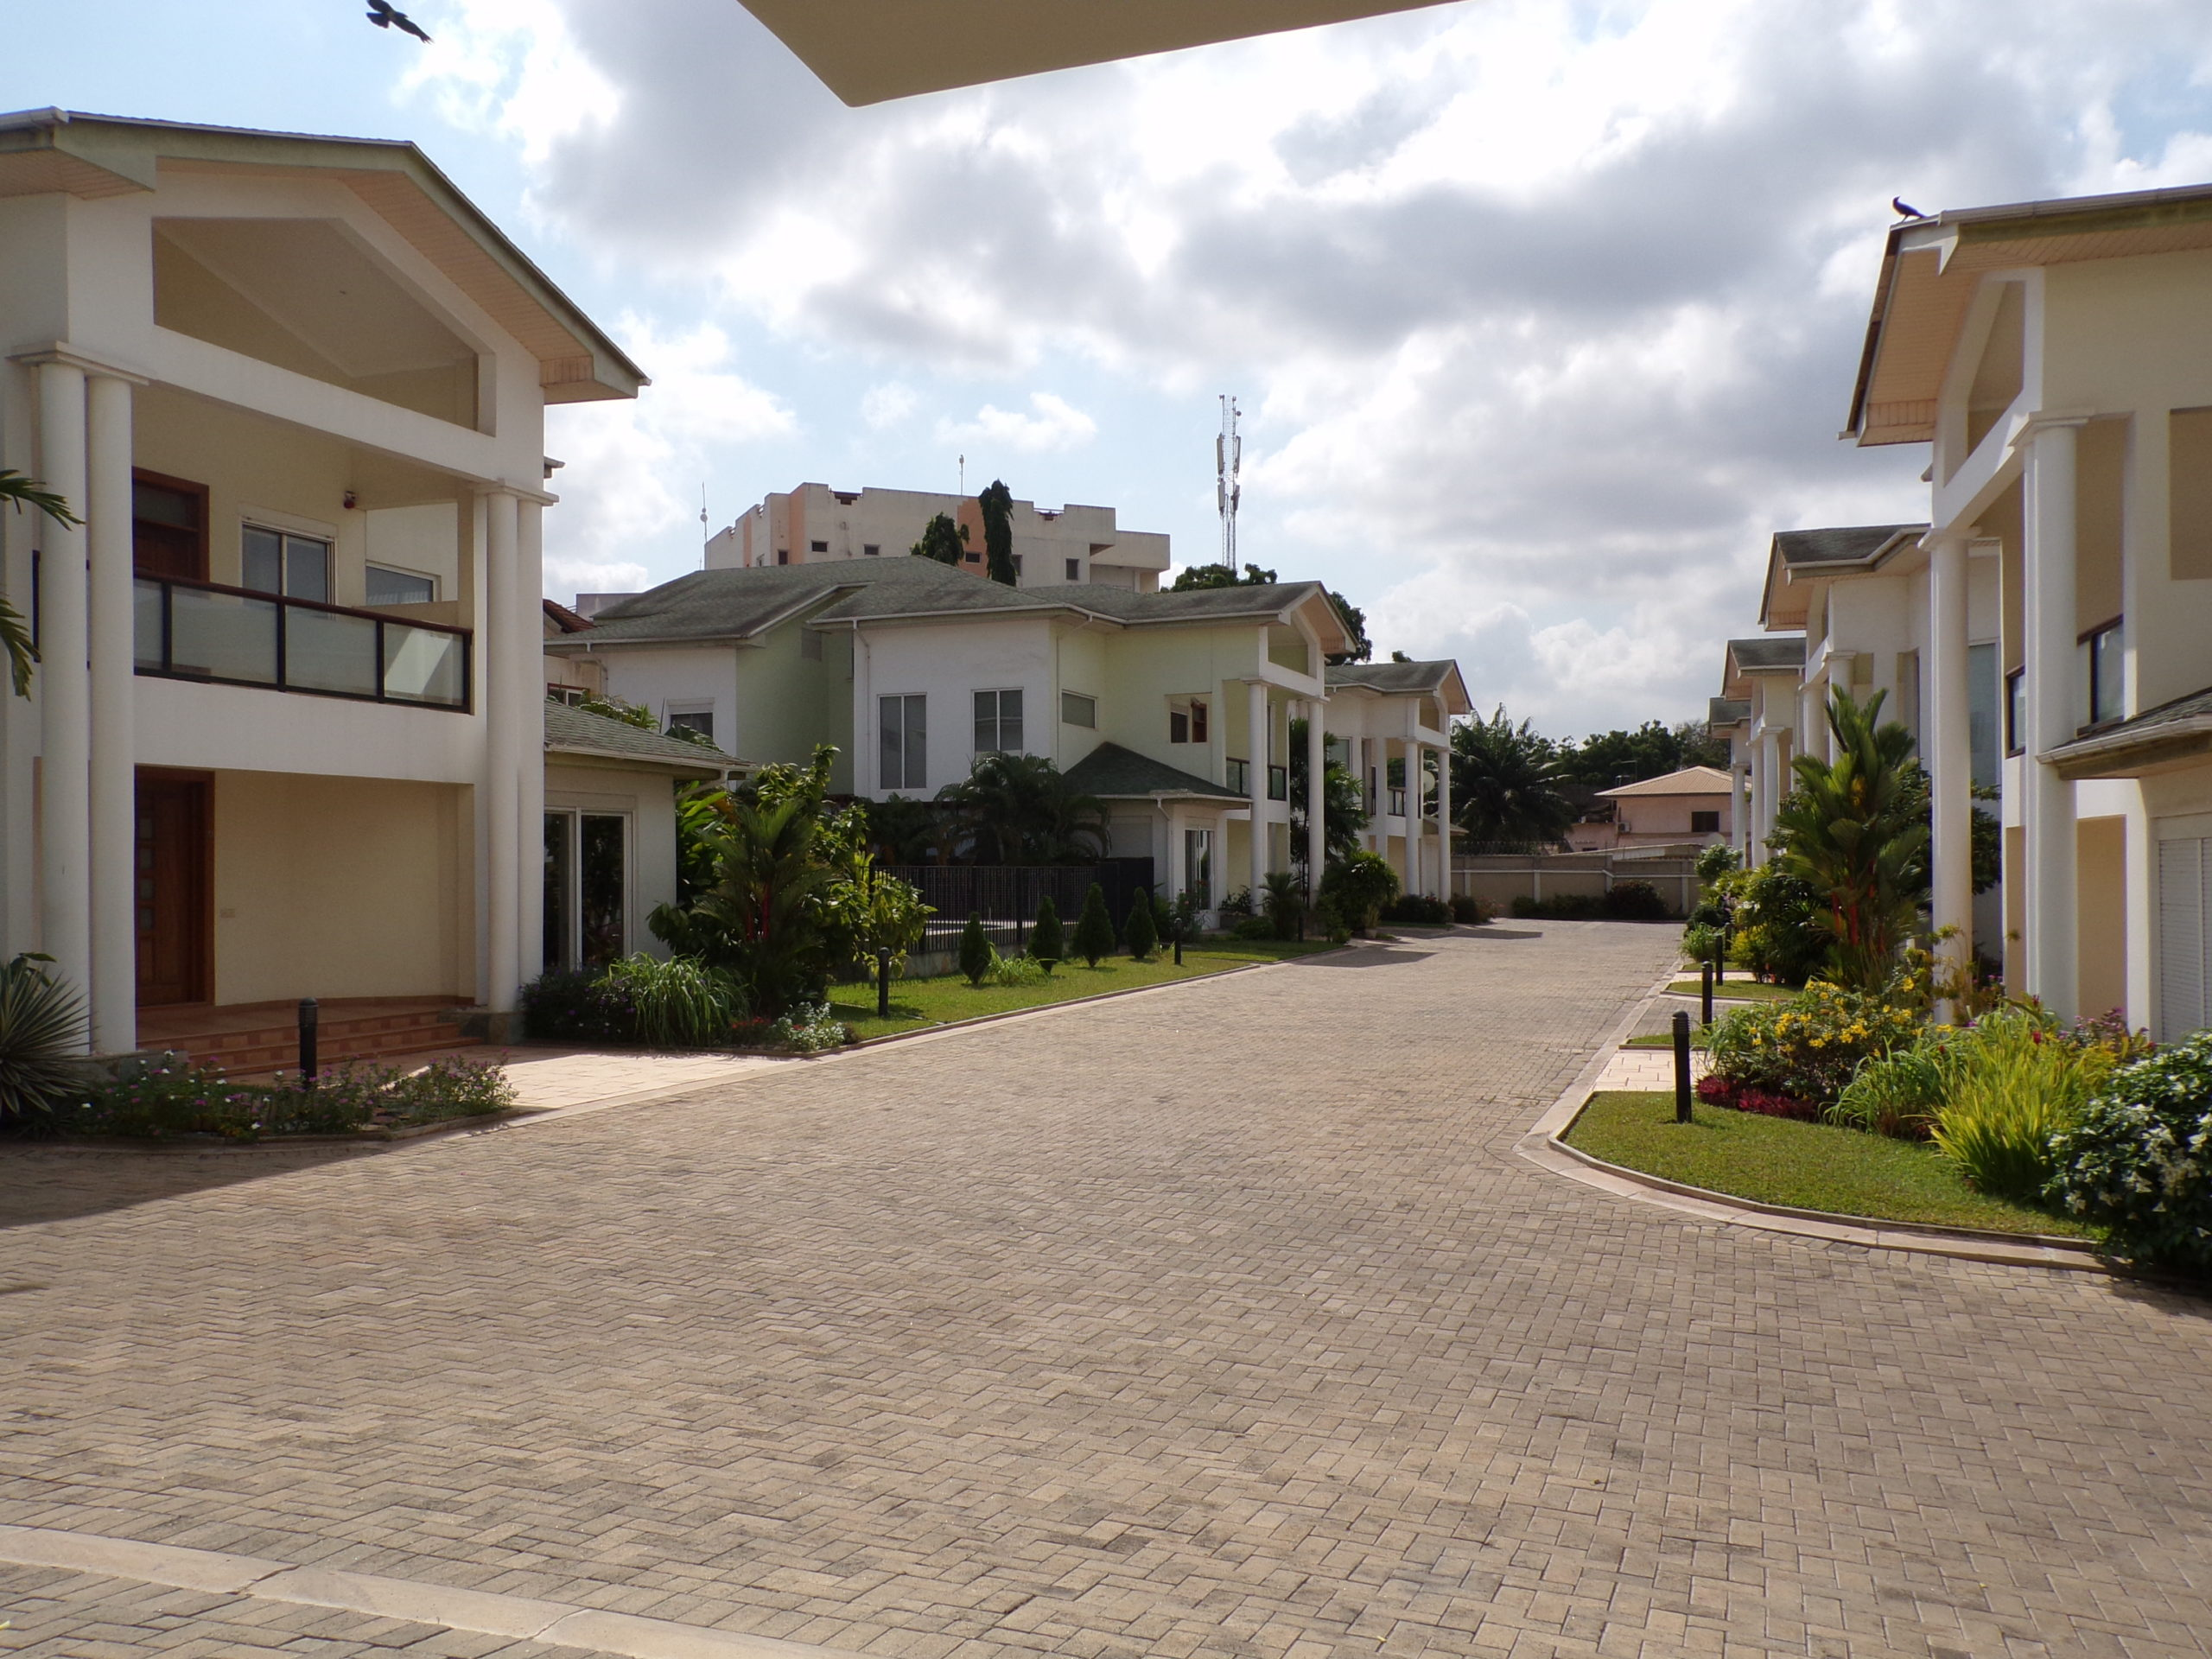 4 BEDROOM TOWNHOUSE FOR RENT AT AIRPORT RESIDENTIAL AREA